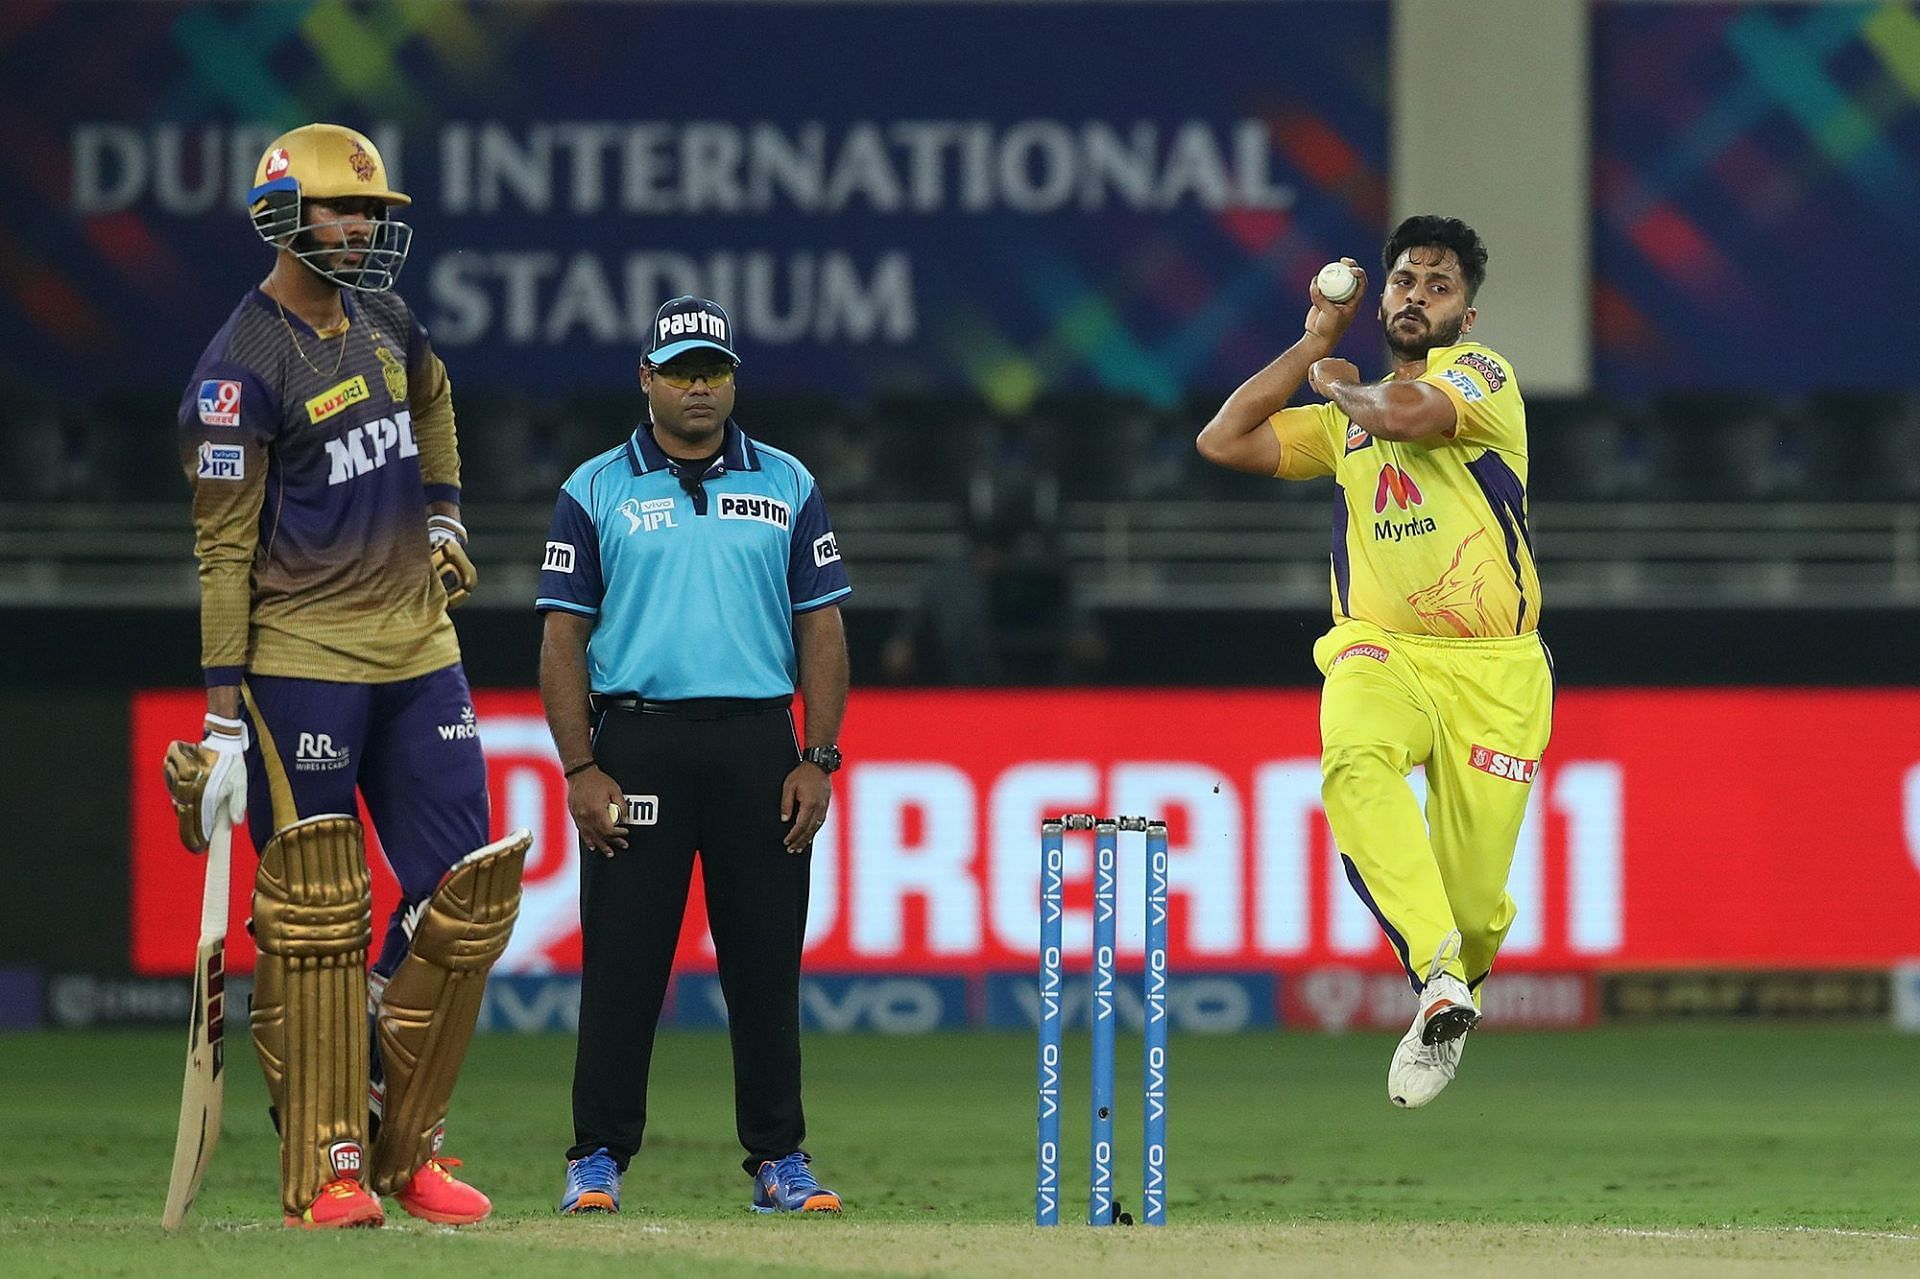 Shardul Thakur finds a way to vanquish 2019 IPL final ghosts